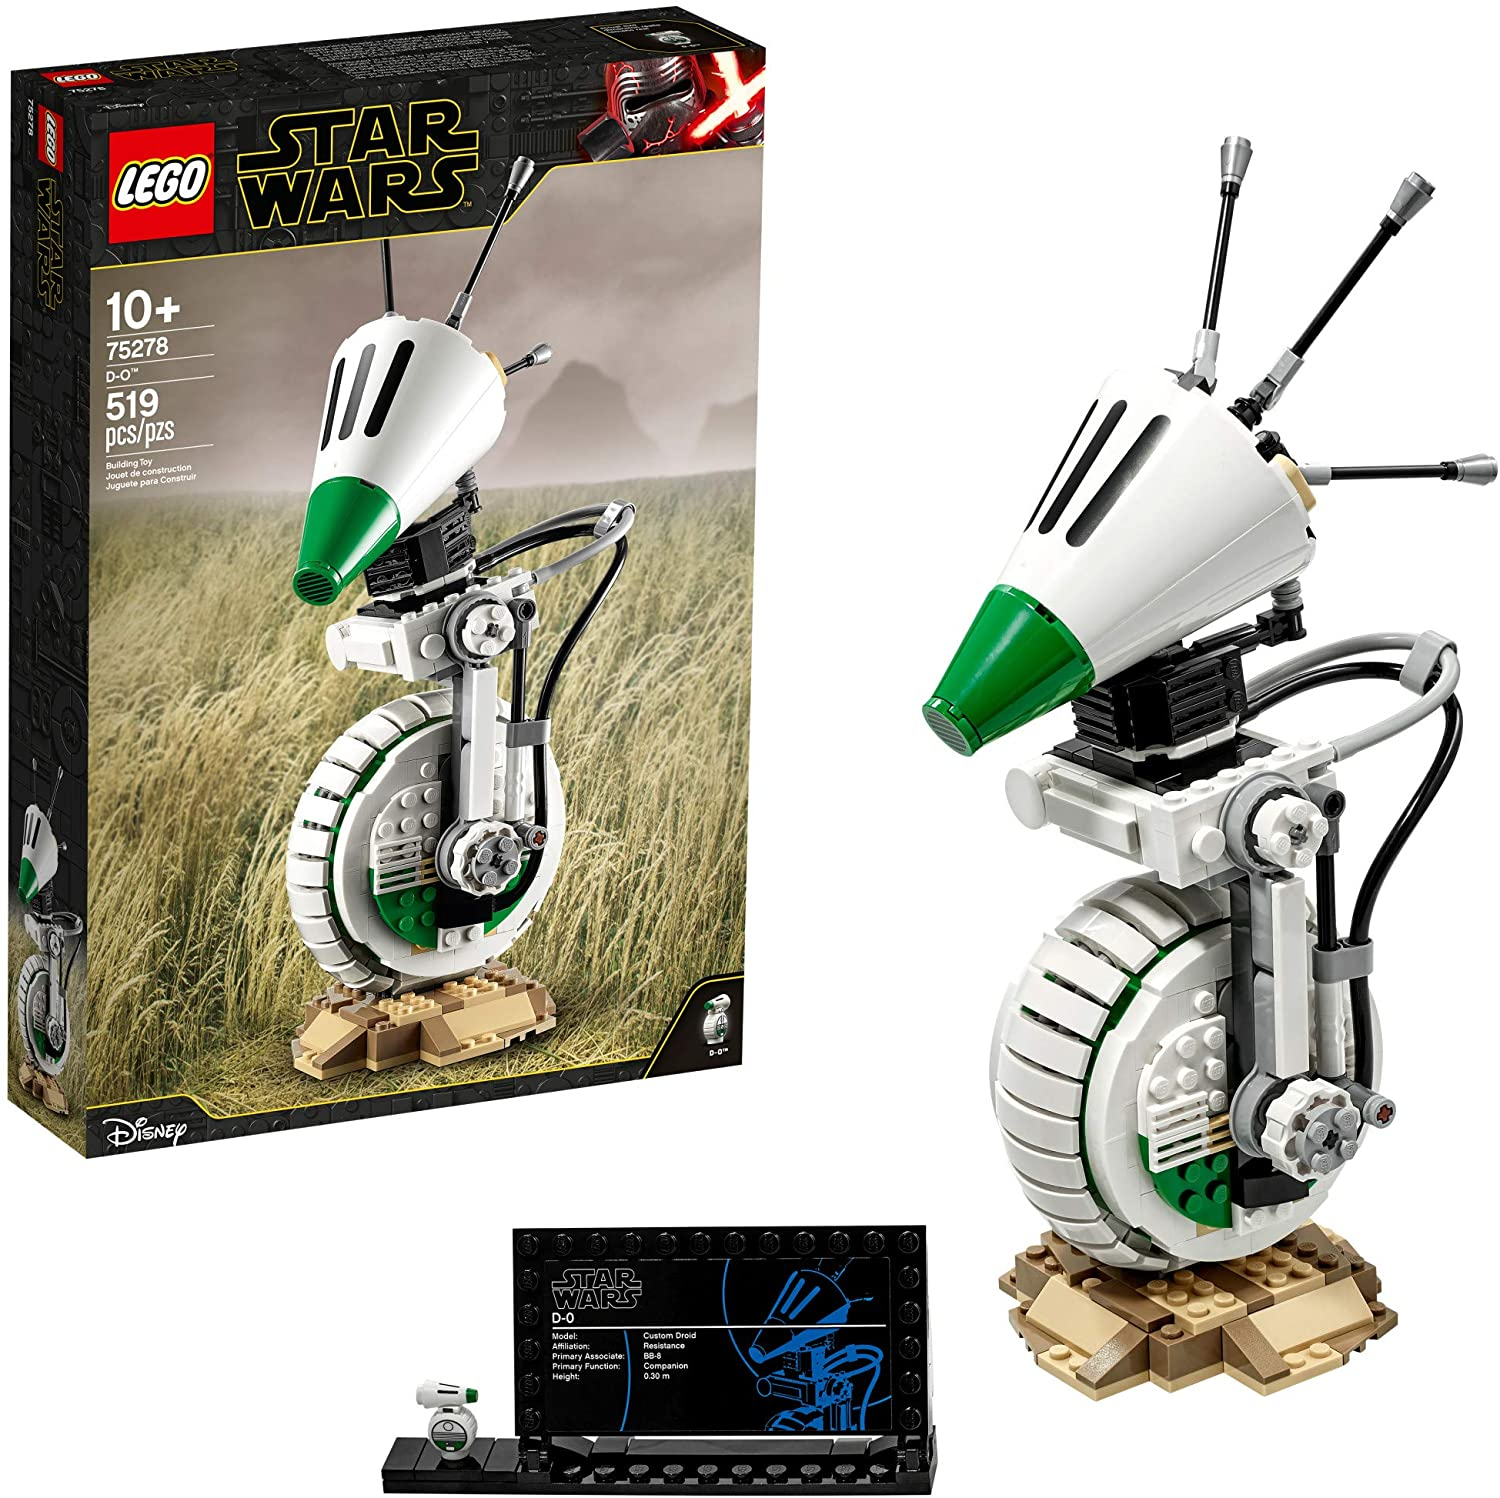 best legos for adults - LEGO Star Wars: D-O Building Kit